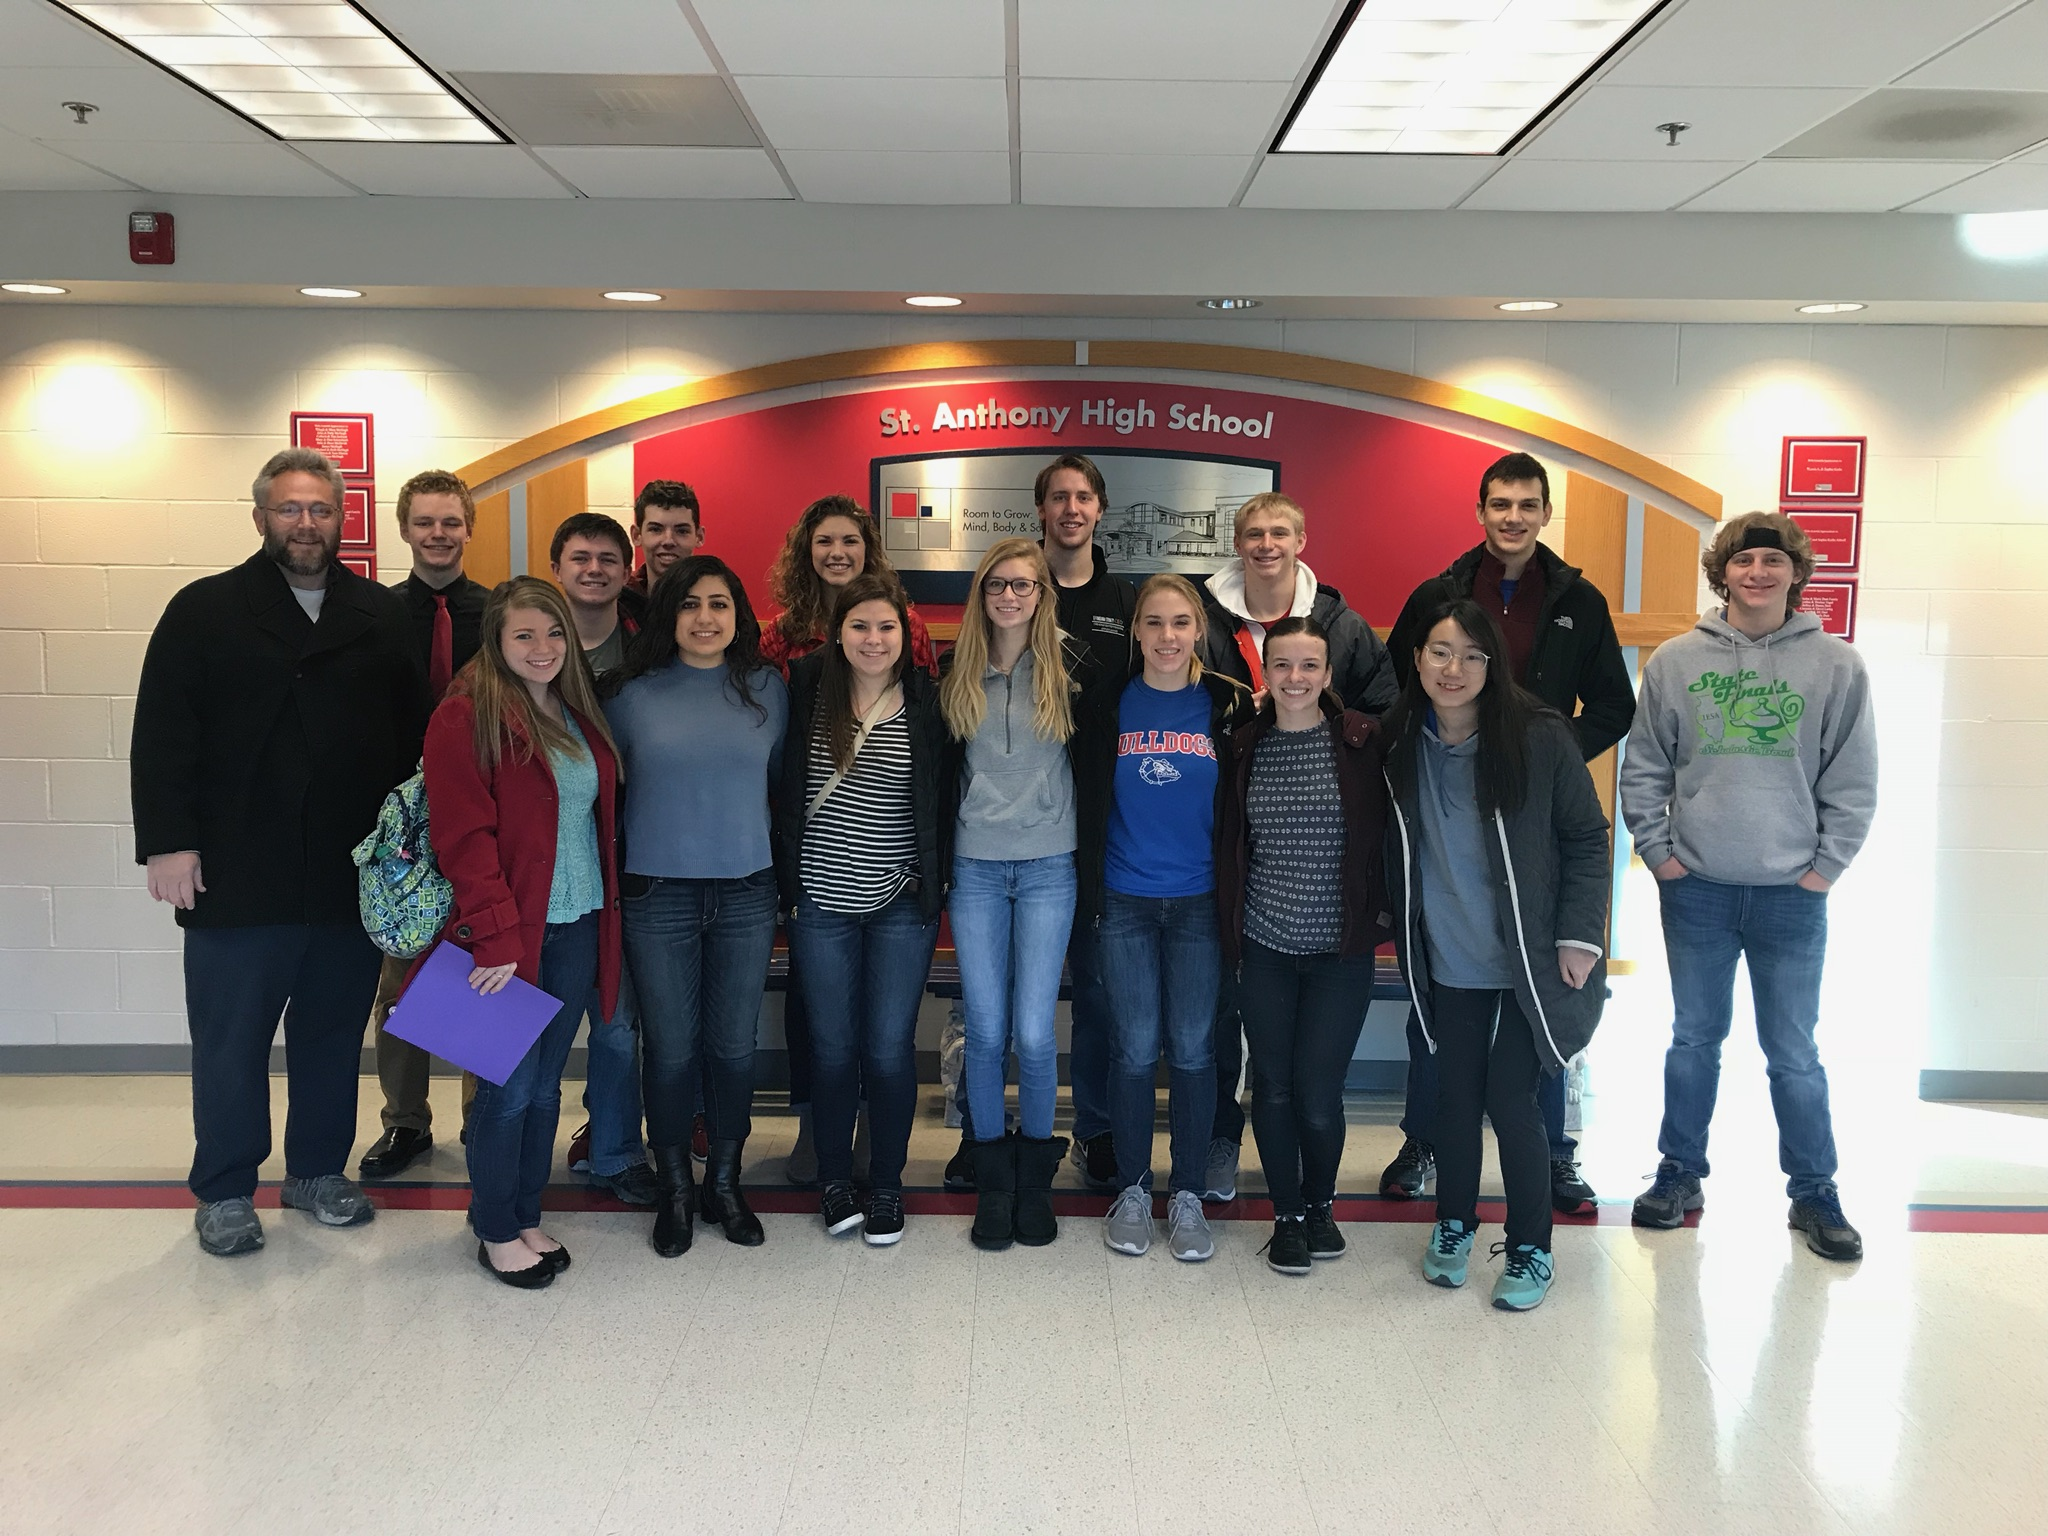 St. Anthony High School WYSE TeamTakes 1stPlace in Regional Contest